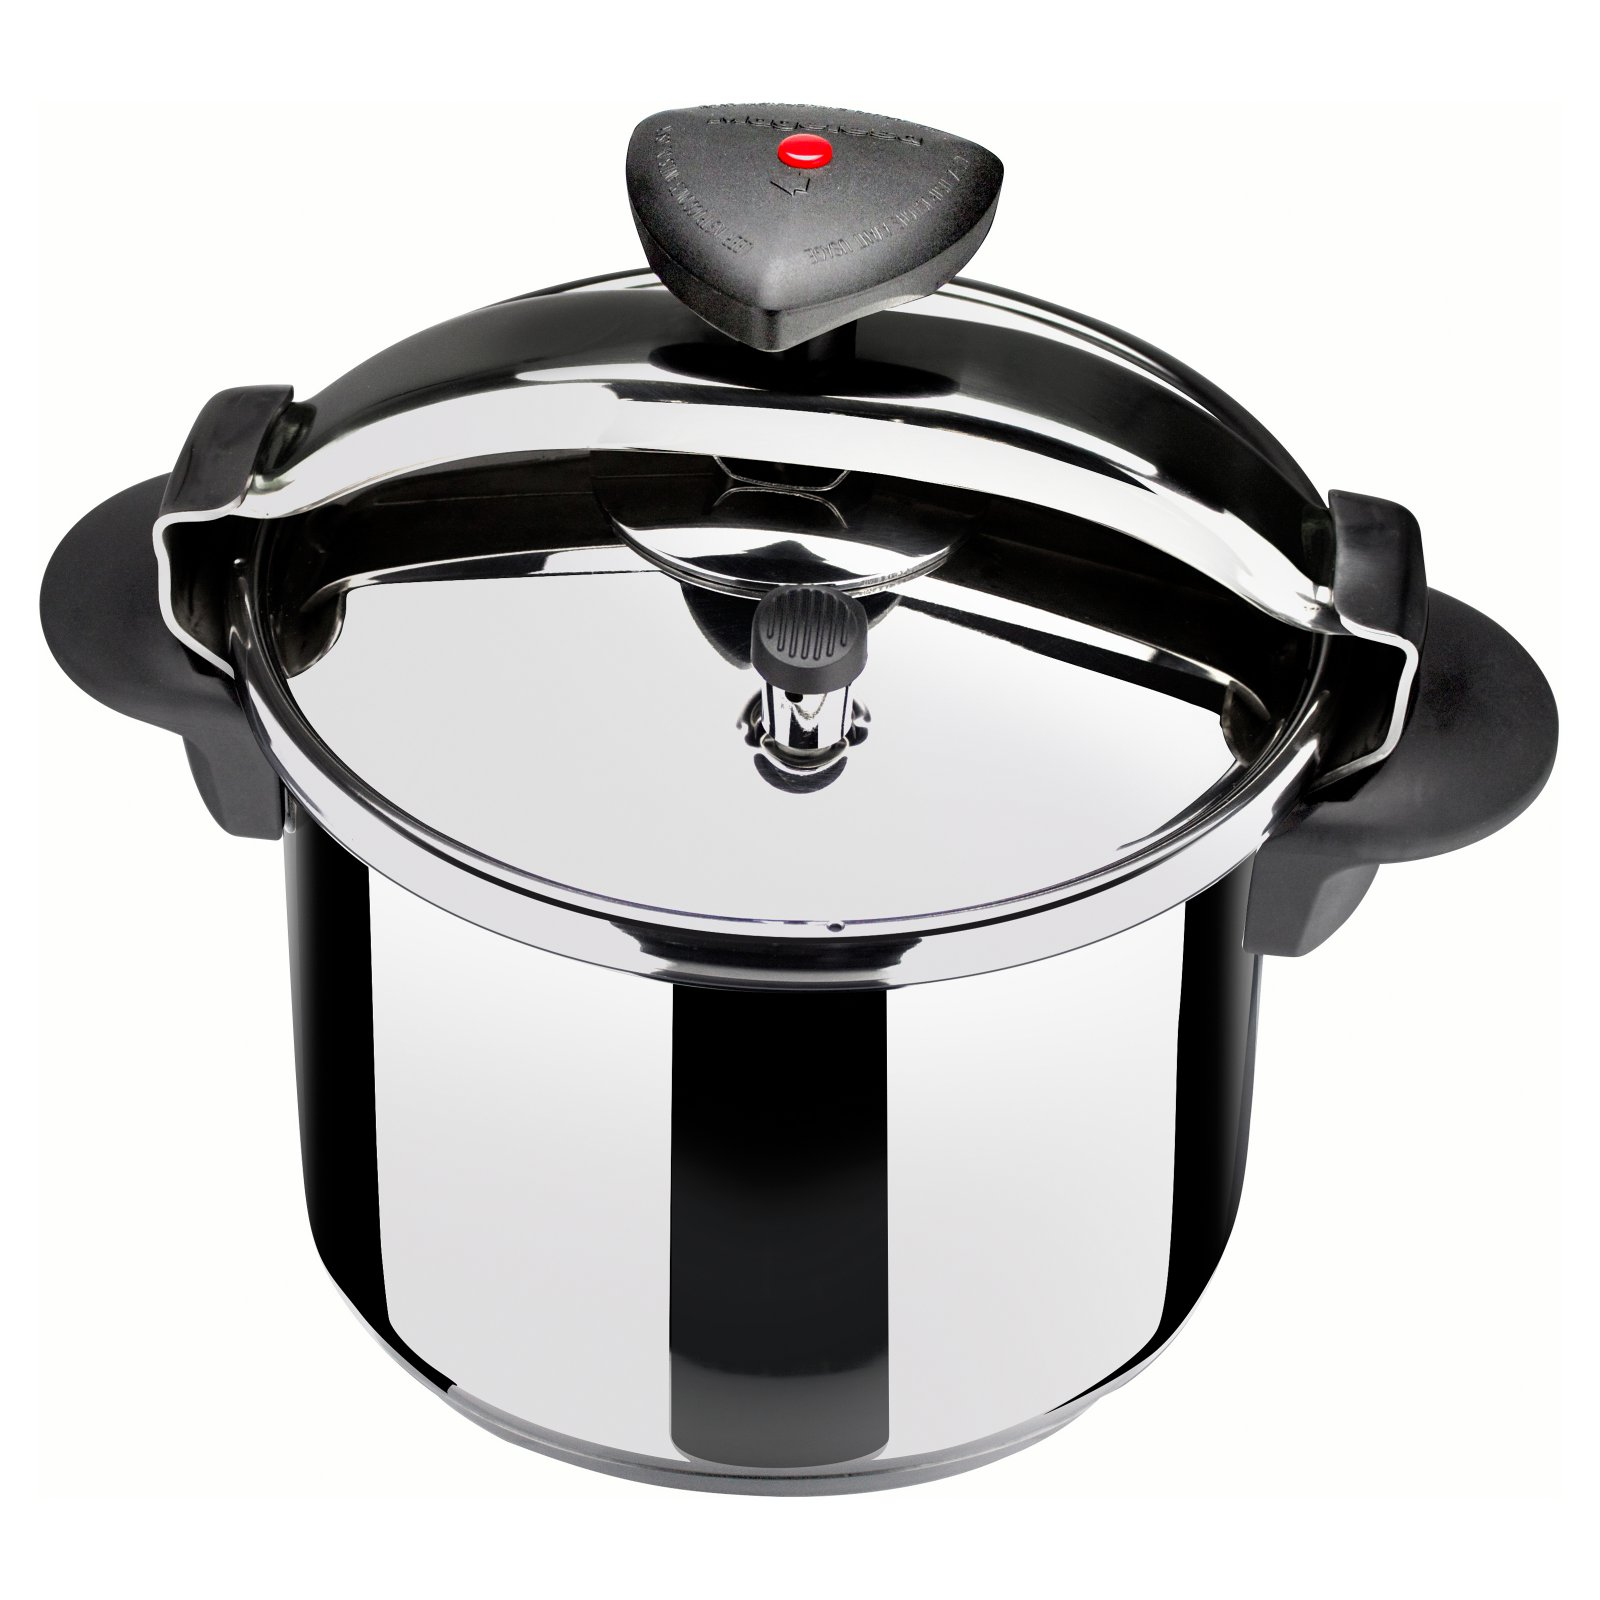 Star 12 Qts. Stainless Steel Pressure Cooker